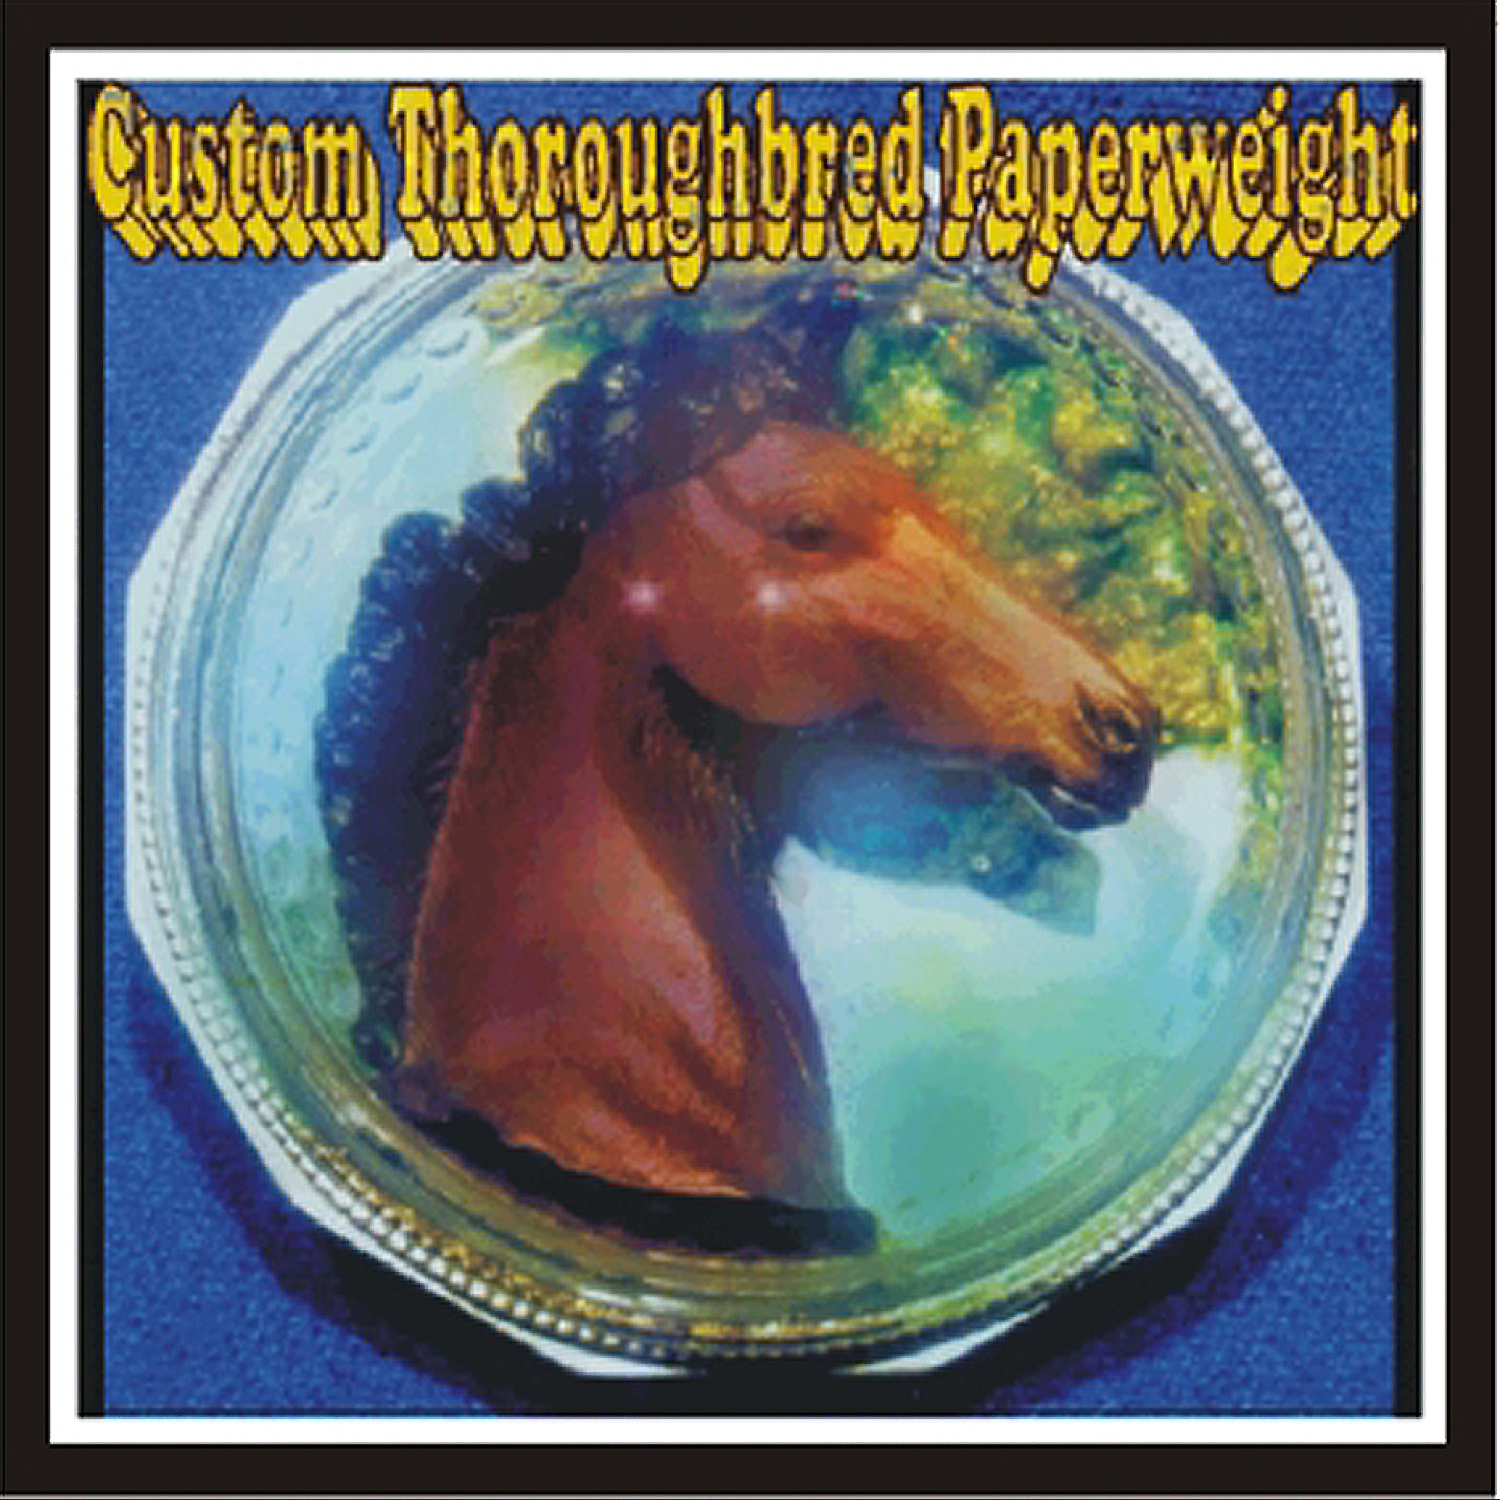 CUSTOM PAINTED THOROUGHBRED OR QUARTER-HORSE PAPERWEIGHTS - Click Image to Close